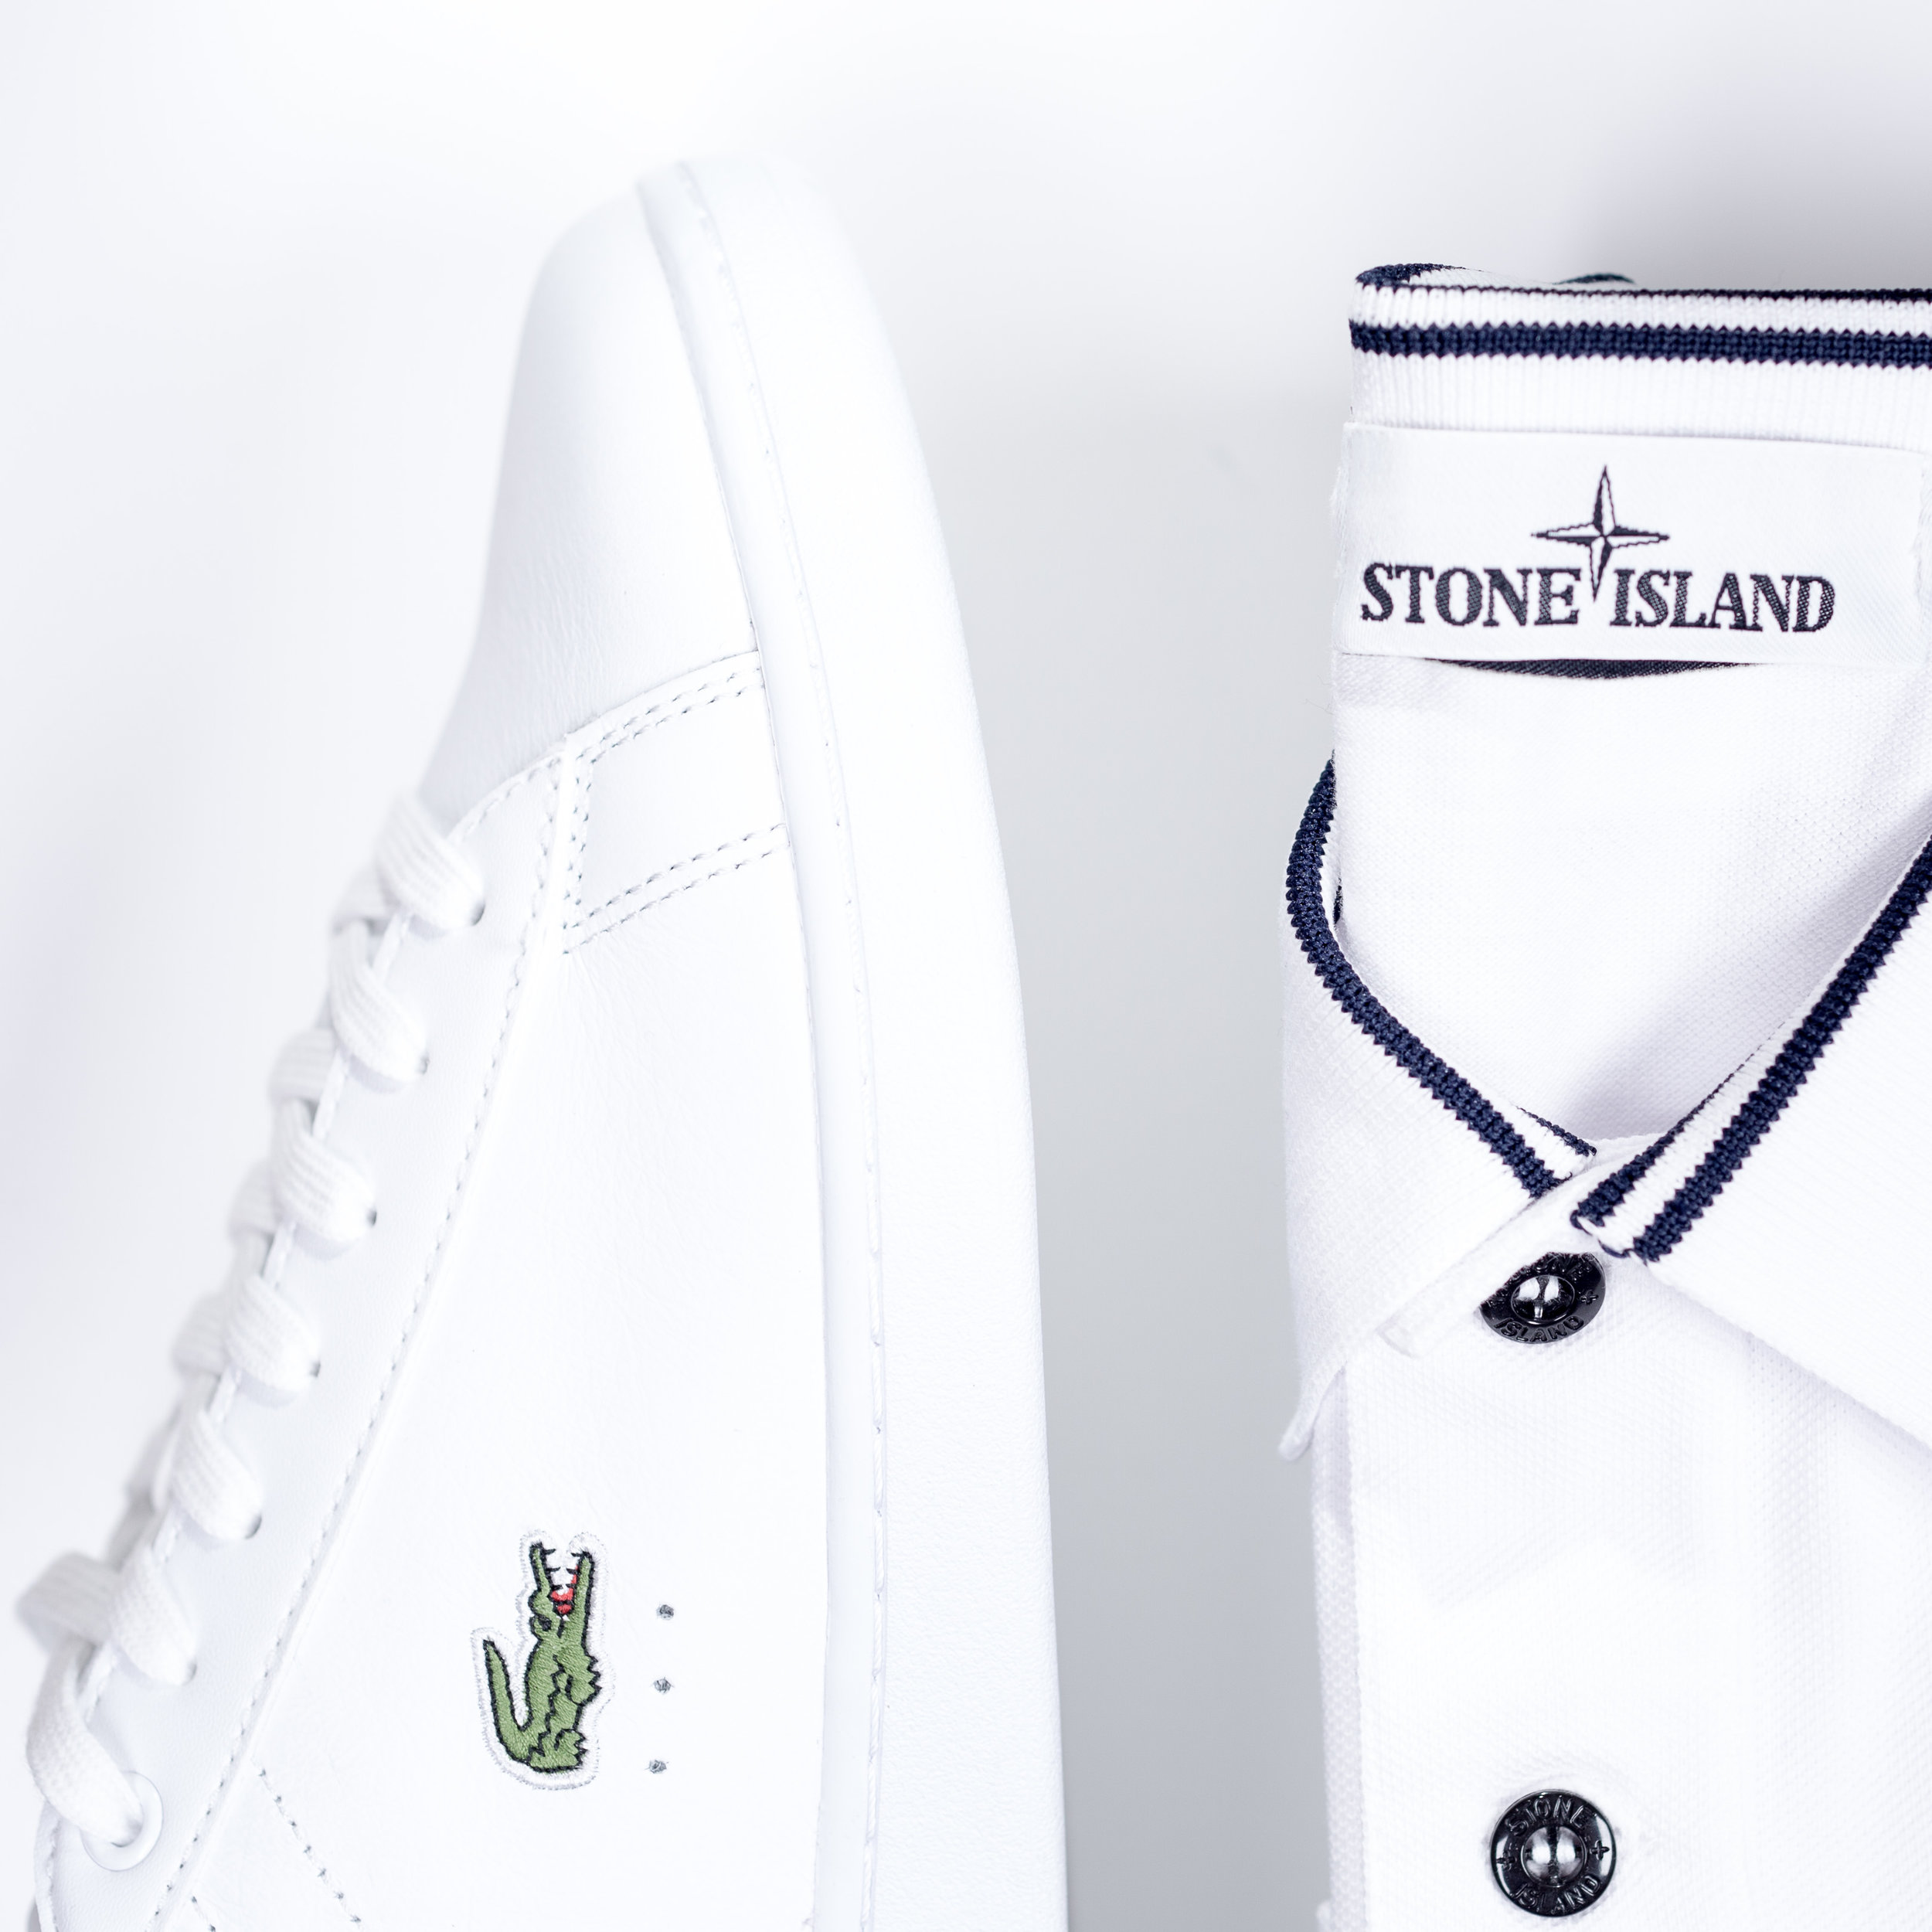 STONE ISLAND AND LACOSTE 2.jpg